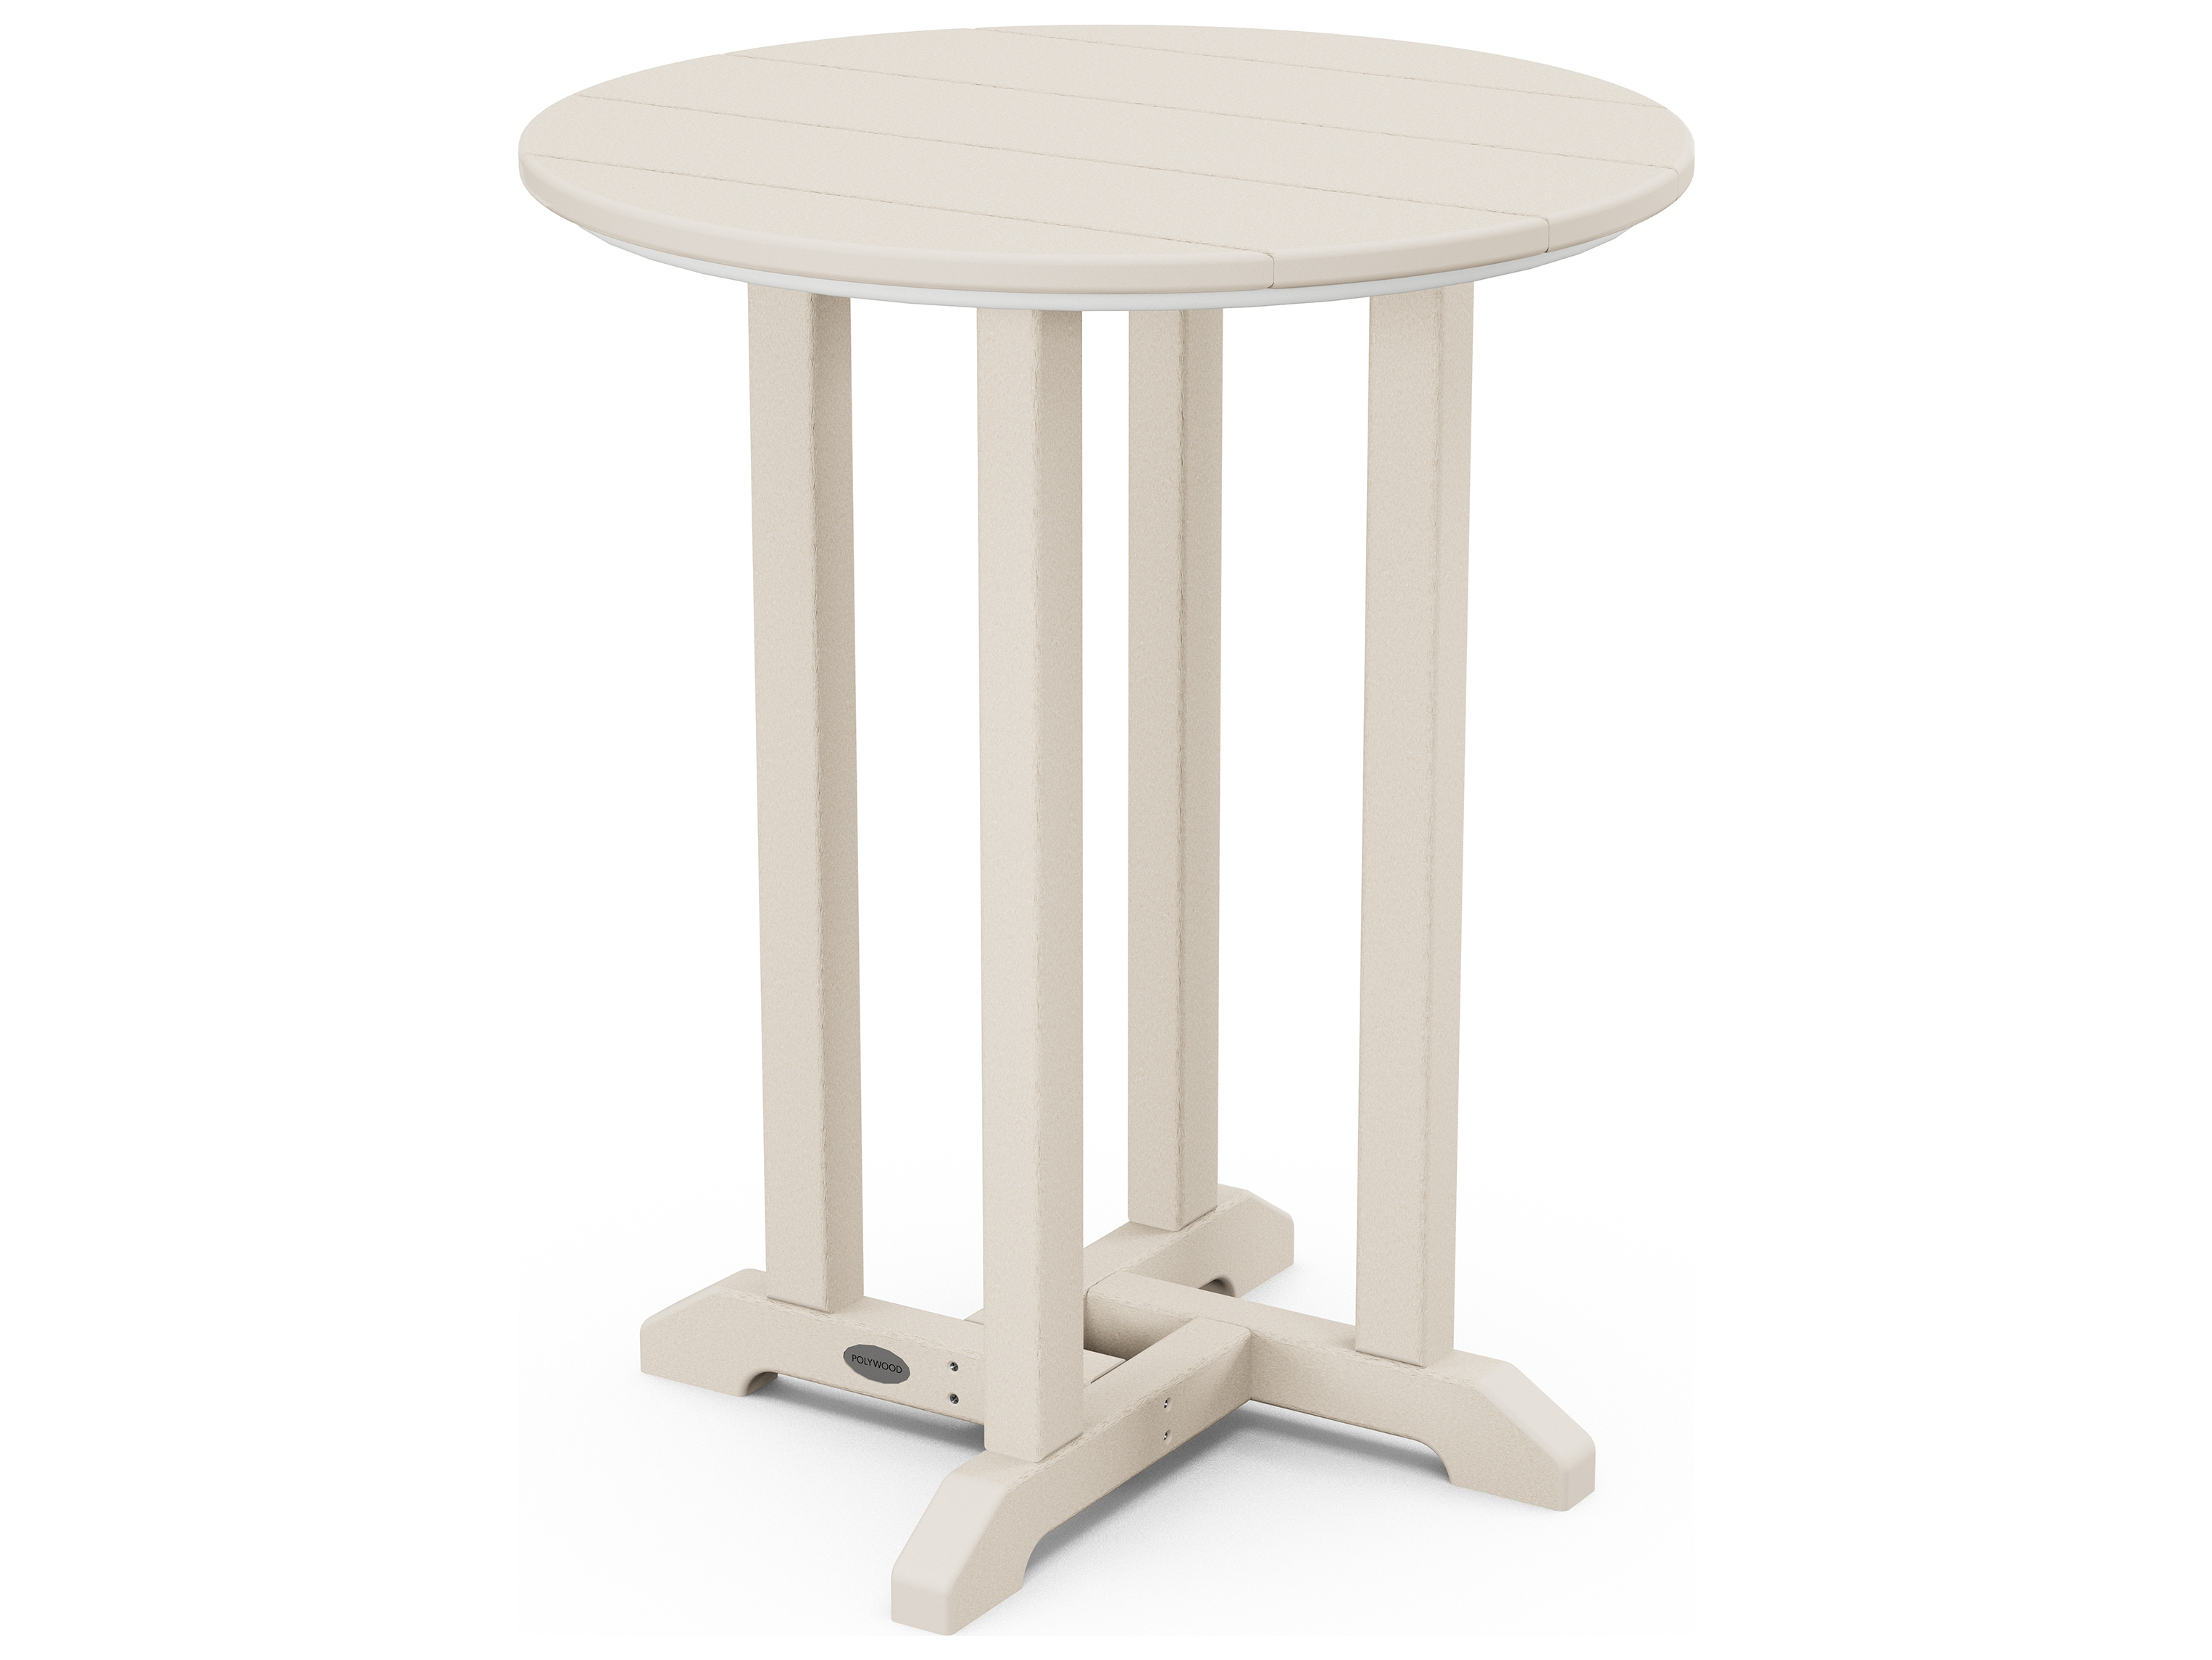 Polywood 174 Traditional Recycled Plastic 24 Round Bistro